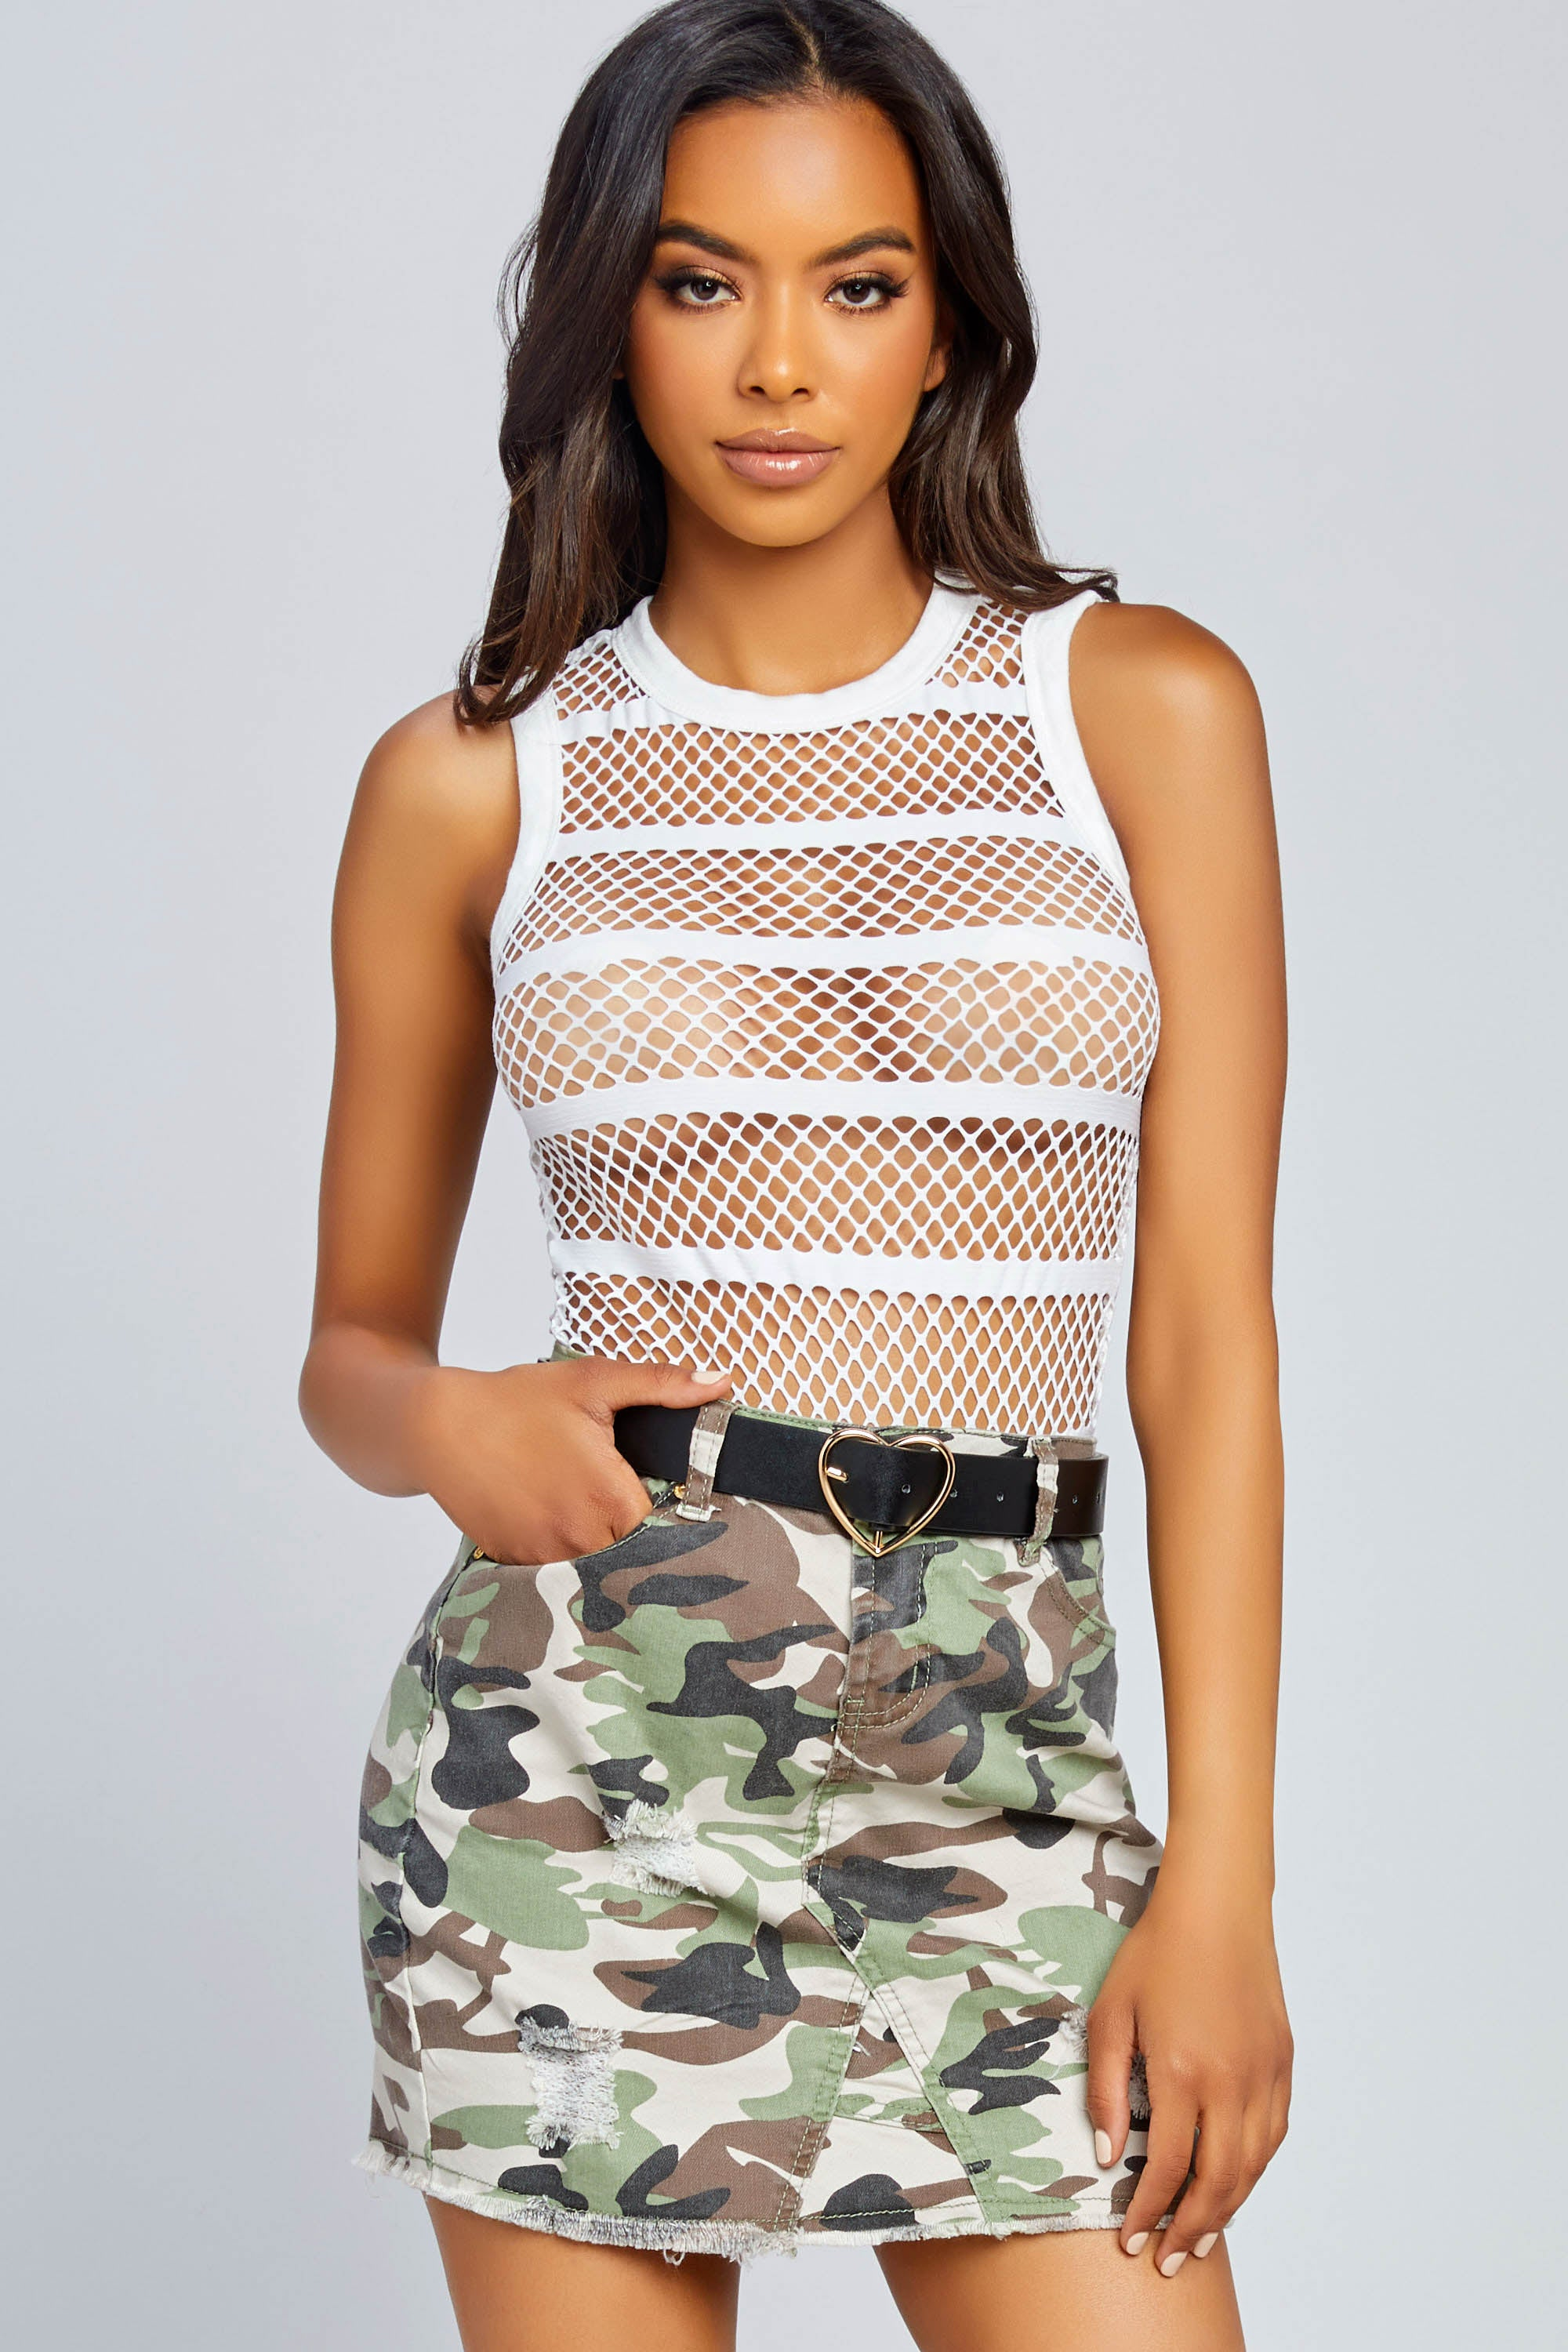 All By Myself Fishnet Bodysuit